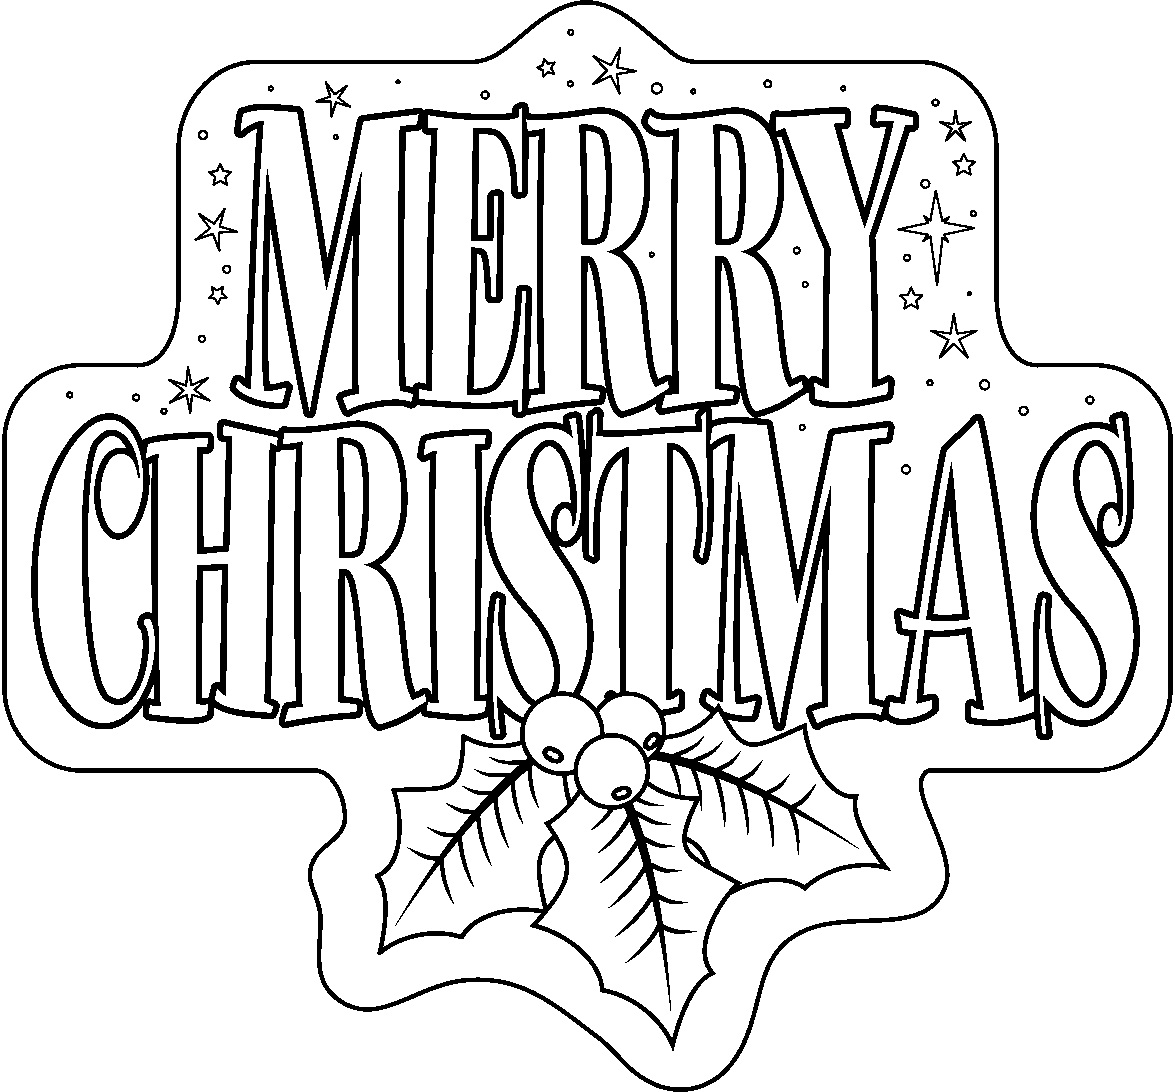 christmas coloring pages for preschoolers christmas 2011 coloring pages for kids children kids coloring preschoolers for christmas pages